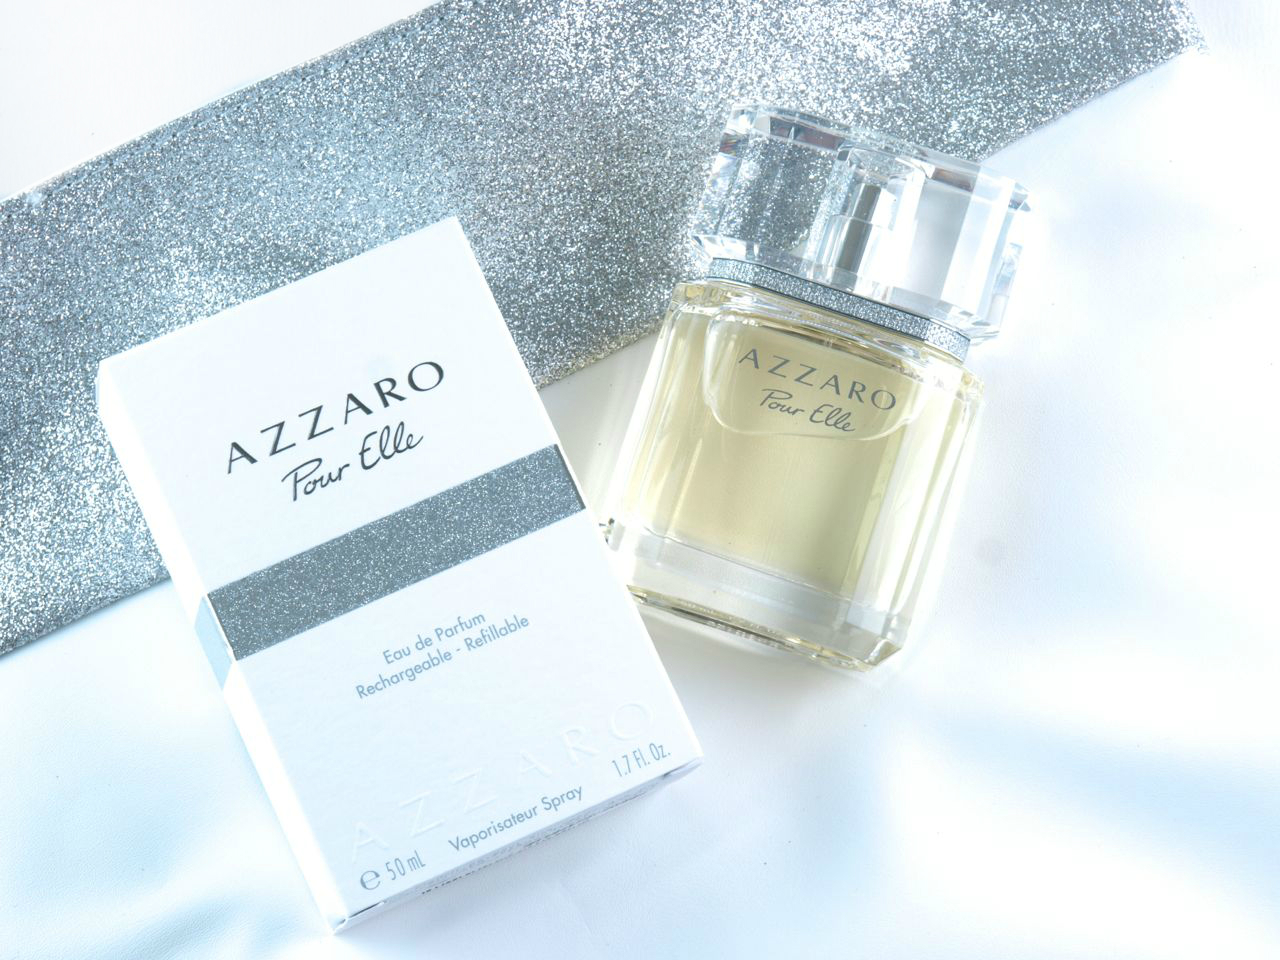 Azzaro Pour Elle Eau De Parfum Review The Happy Sloths Beauty